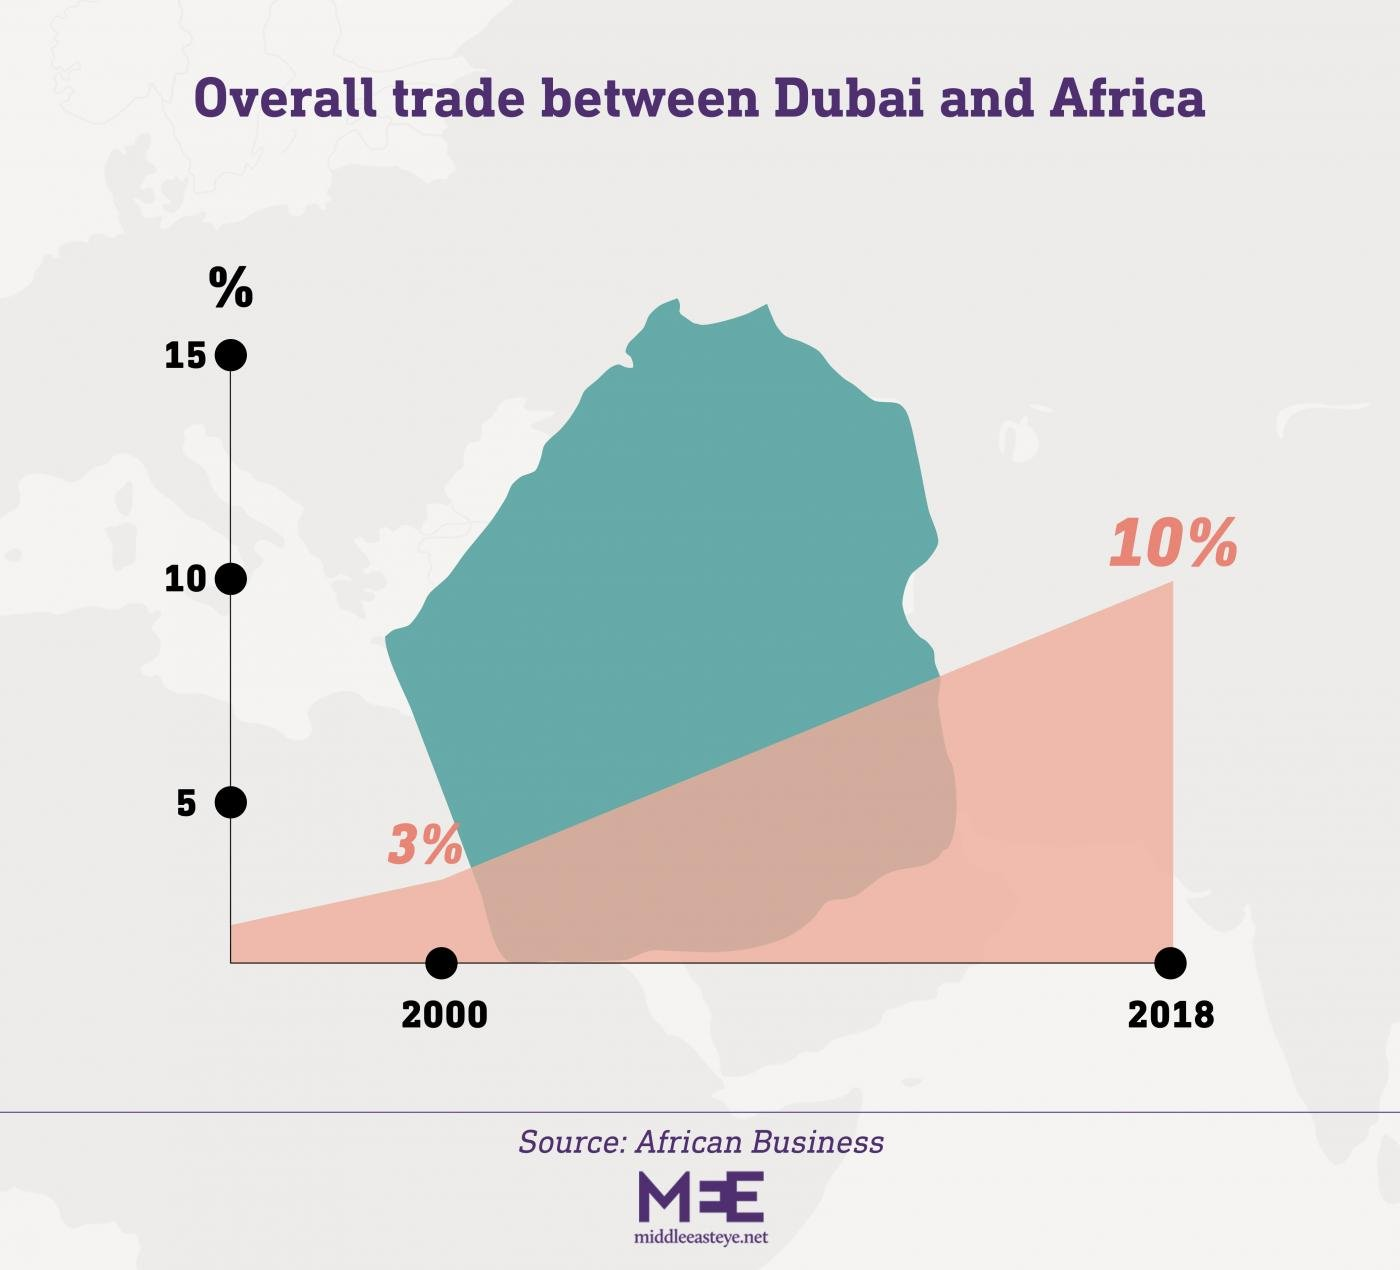 Trade increases between Dubai and Africa